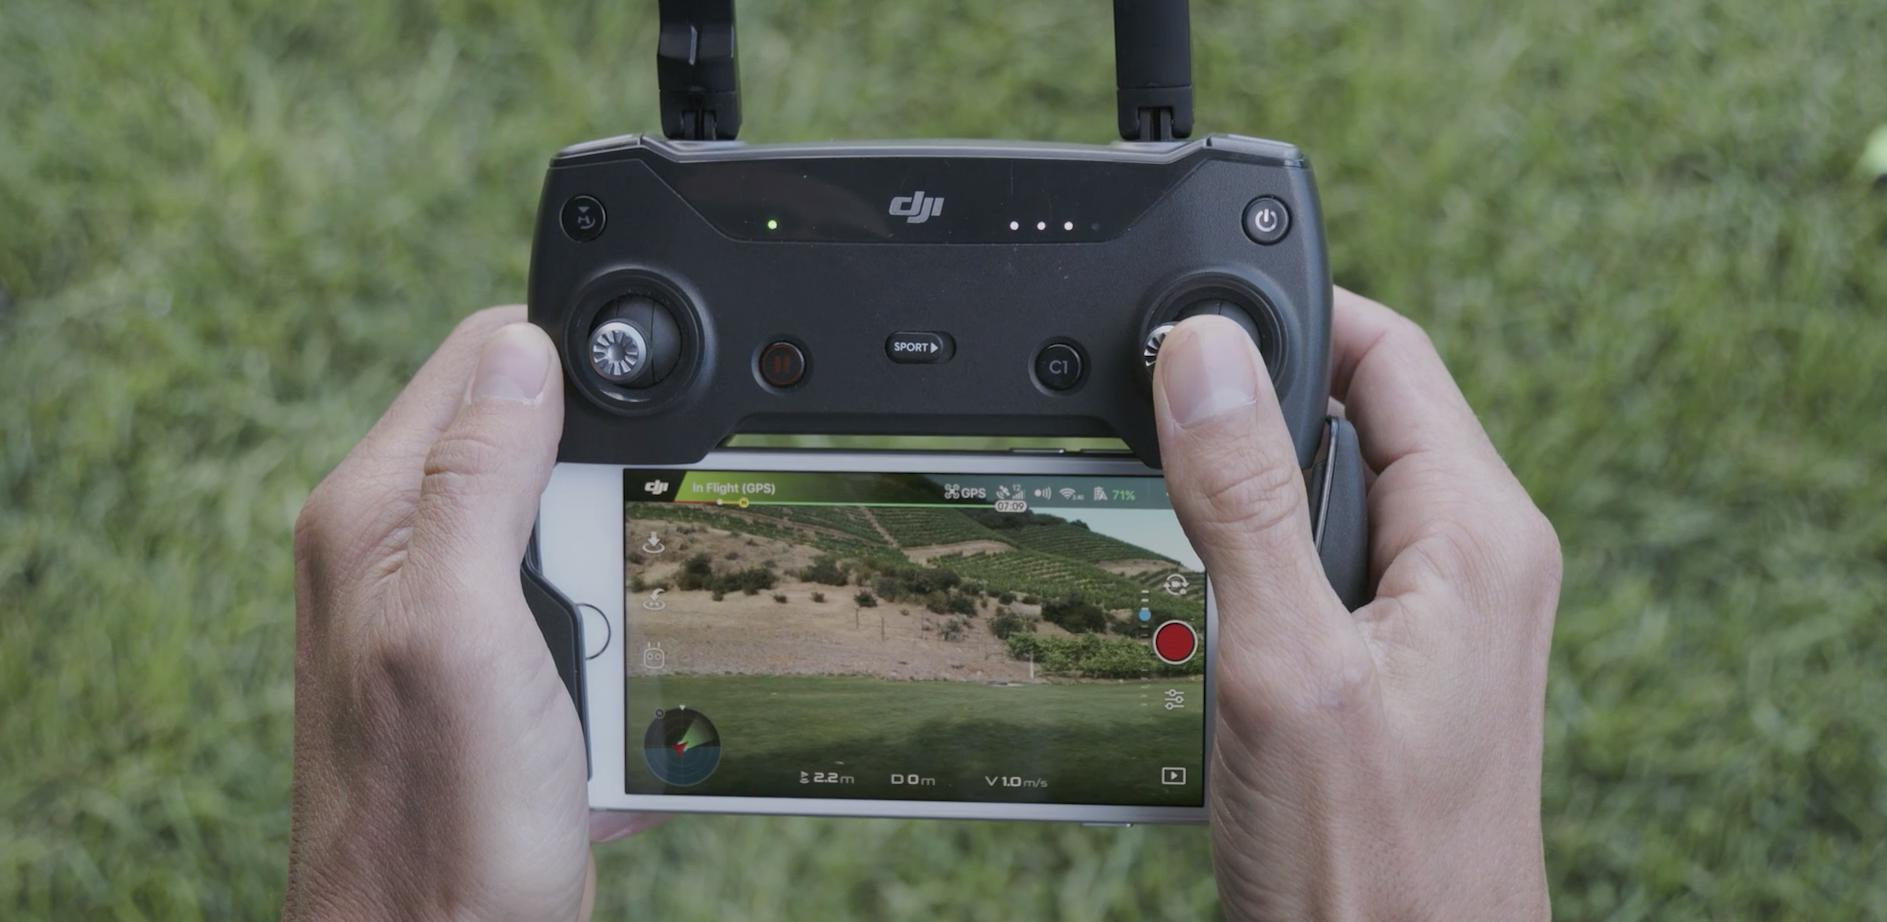 Is the DJI Spark Remote Controller Worth It? - DJI Guides